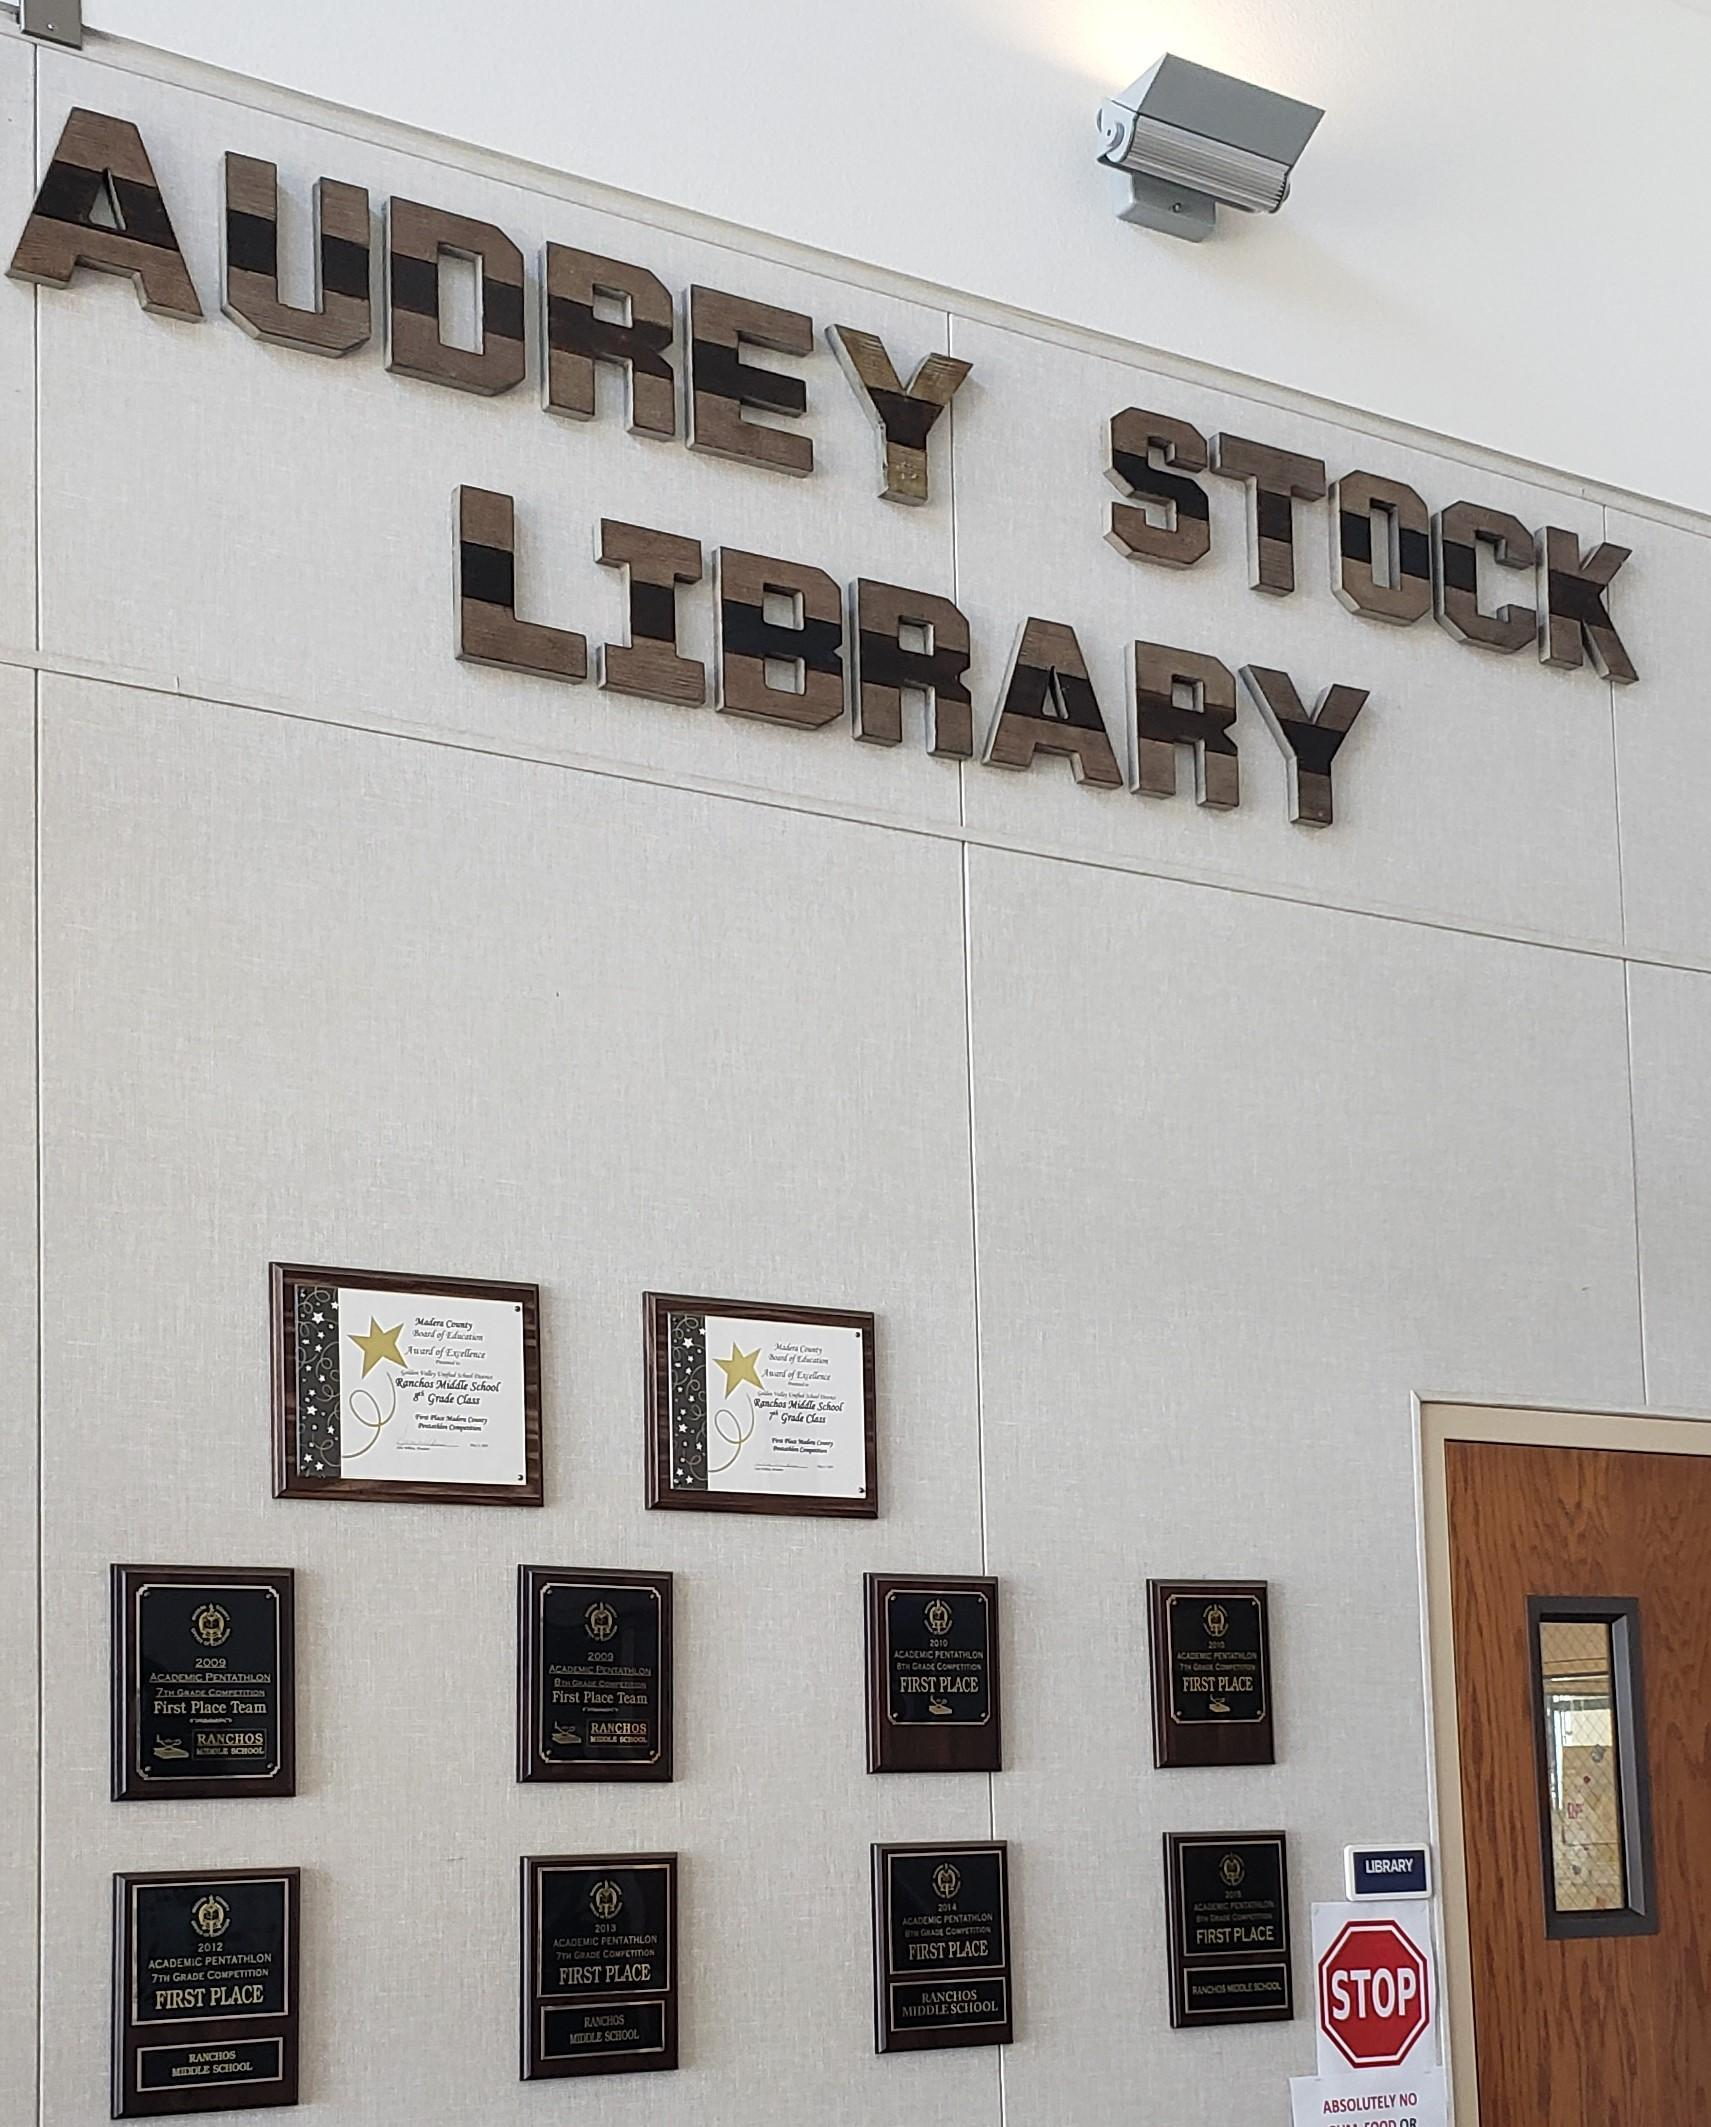 Picture of the Audrey Stock Library